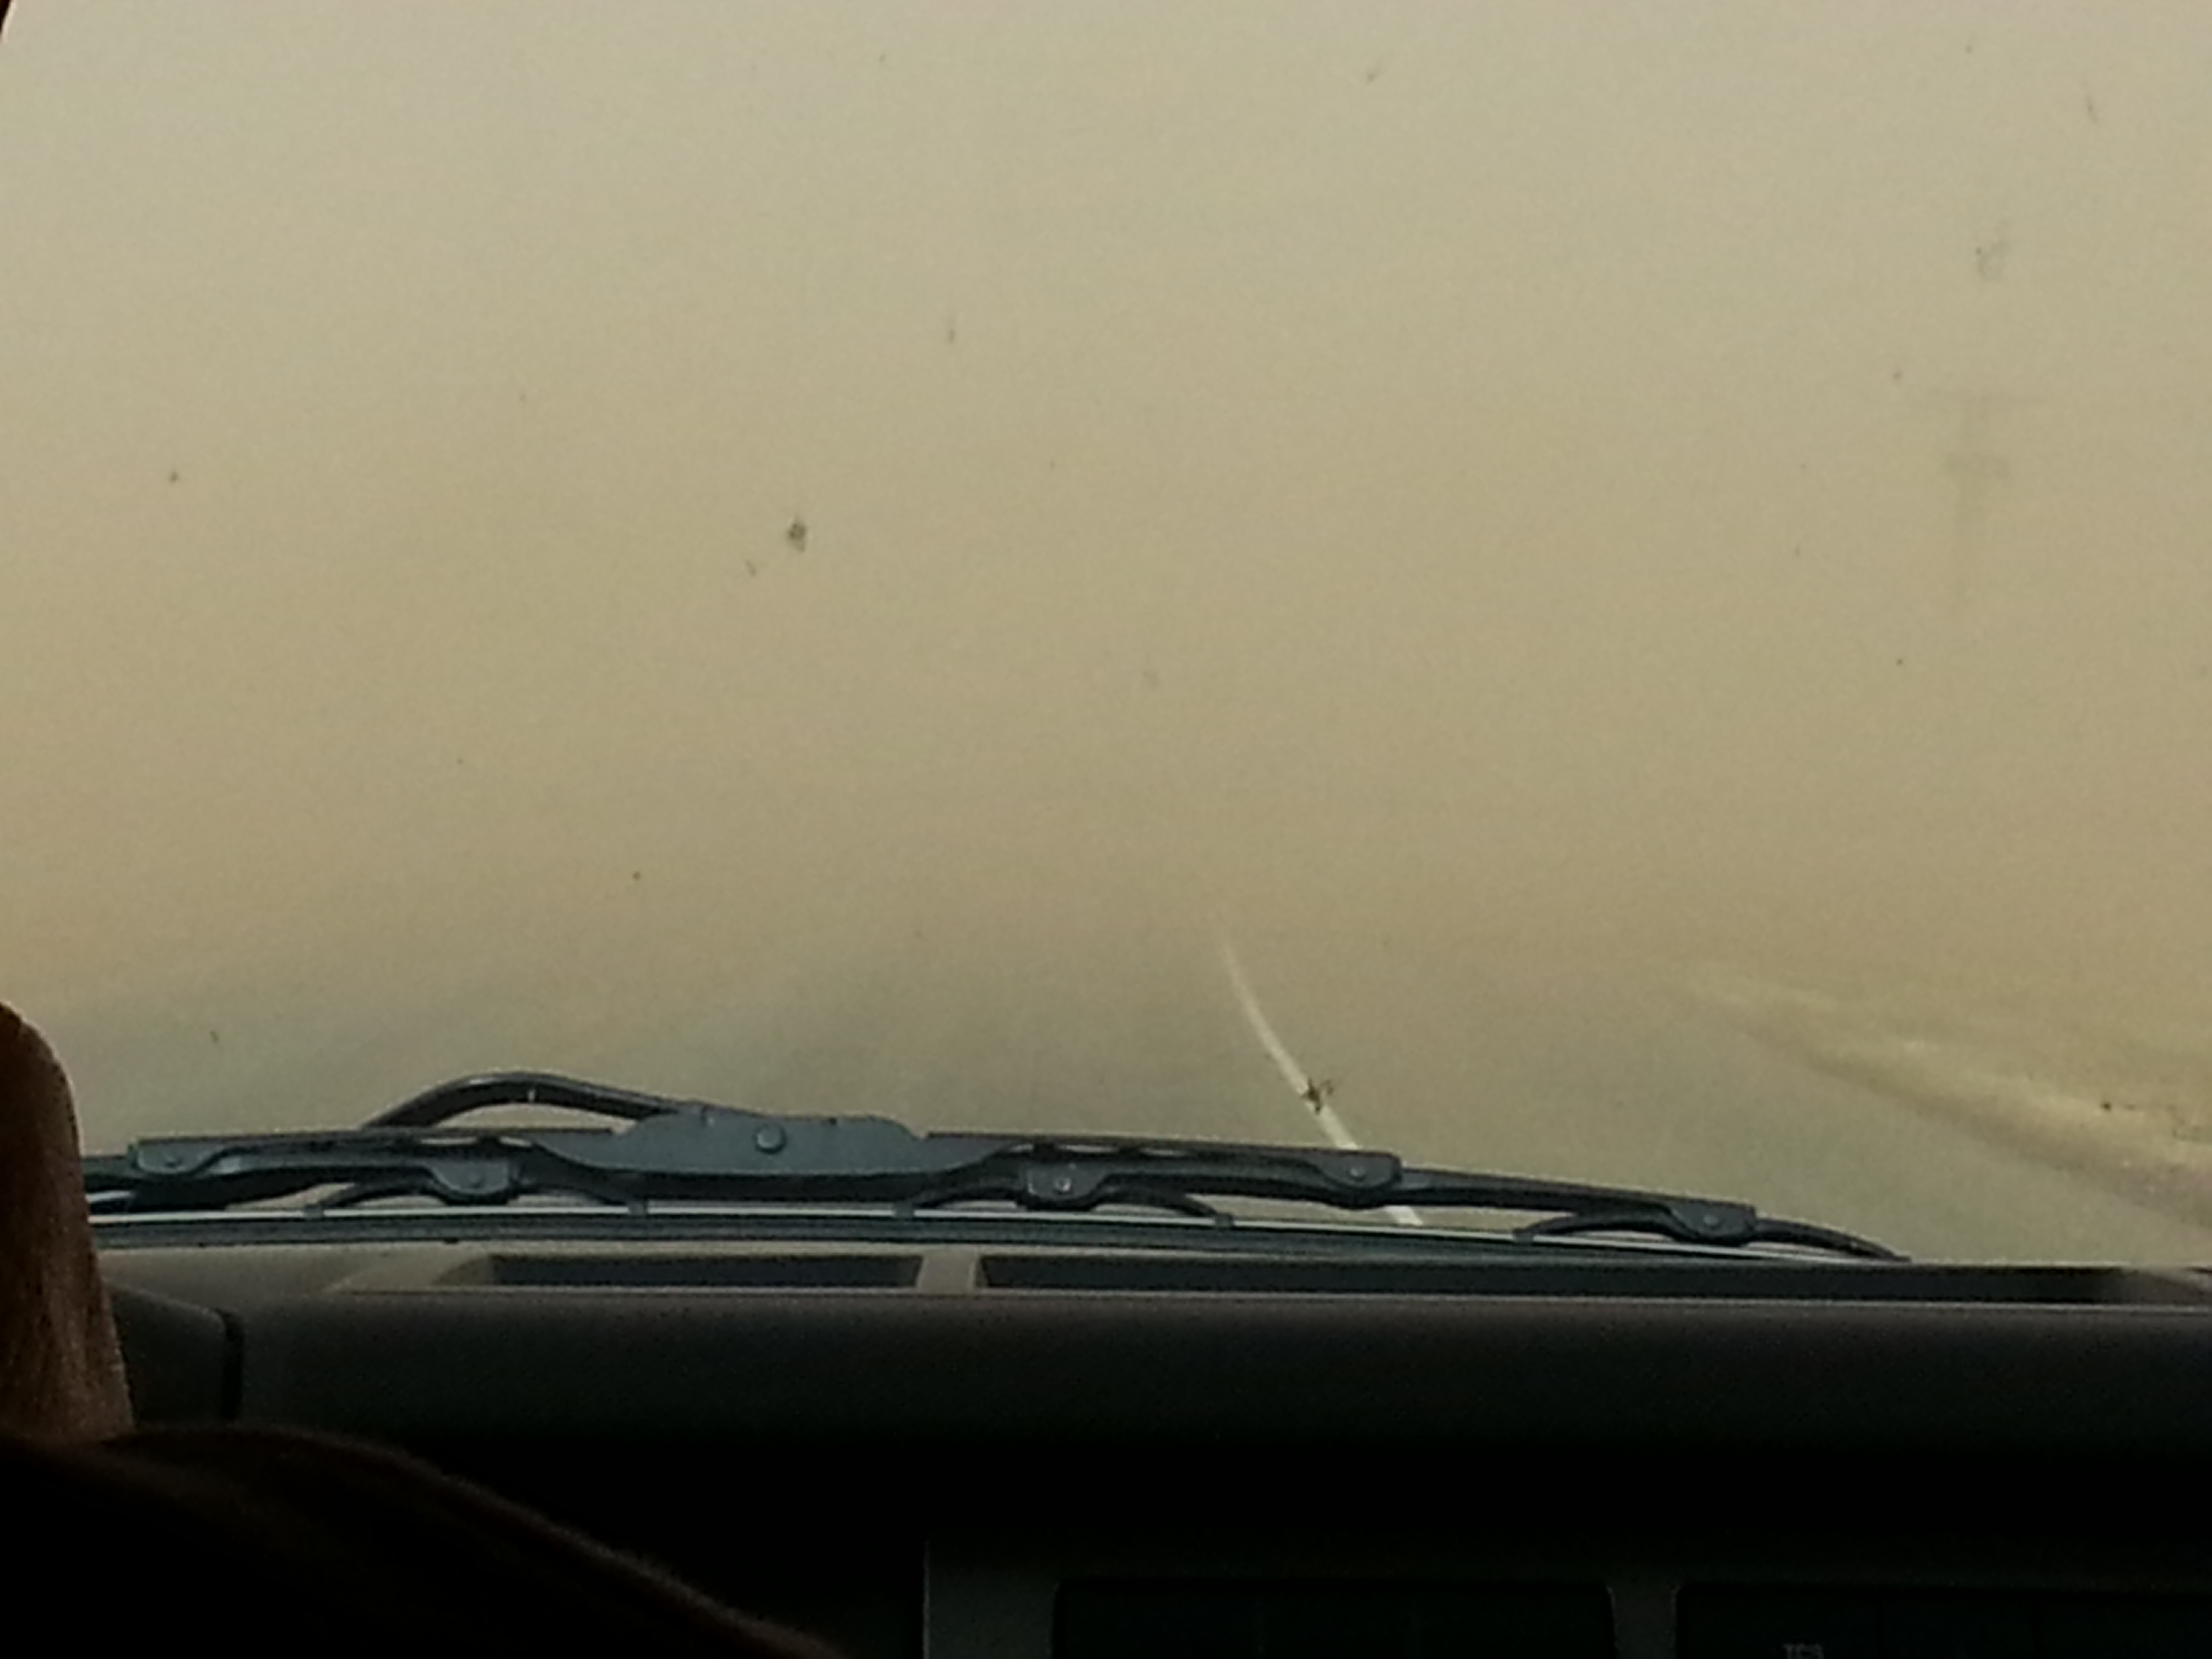 The strong winds and blowing dust made travel difficult in spots. Near zero visibility briefly on the west side of Ralls.